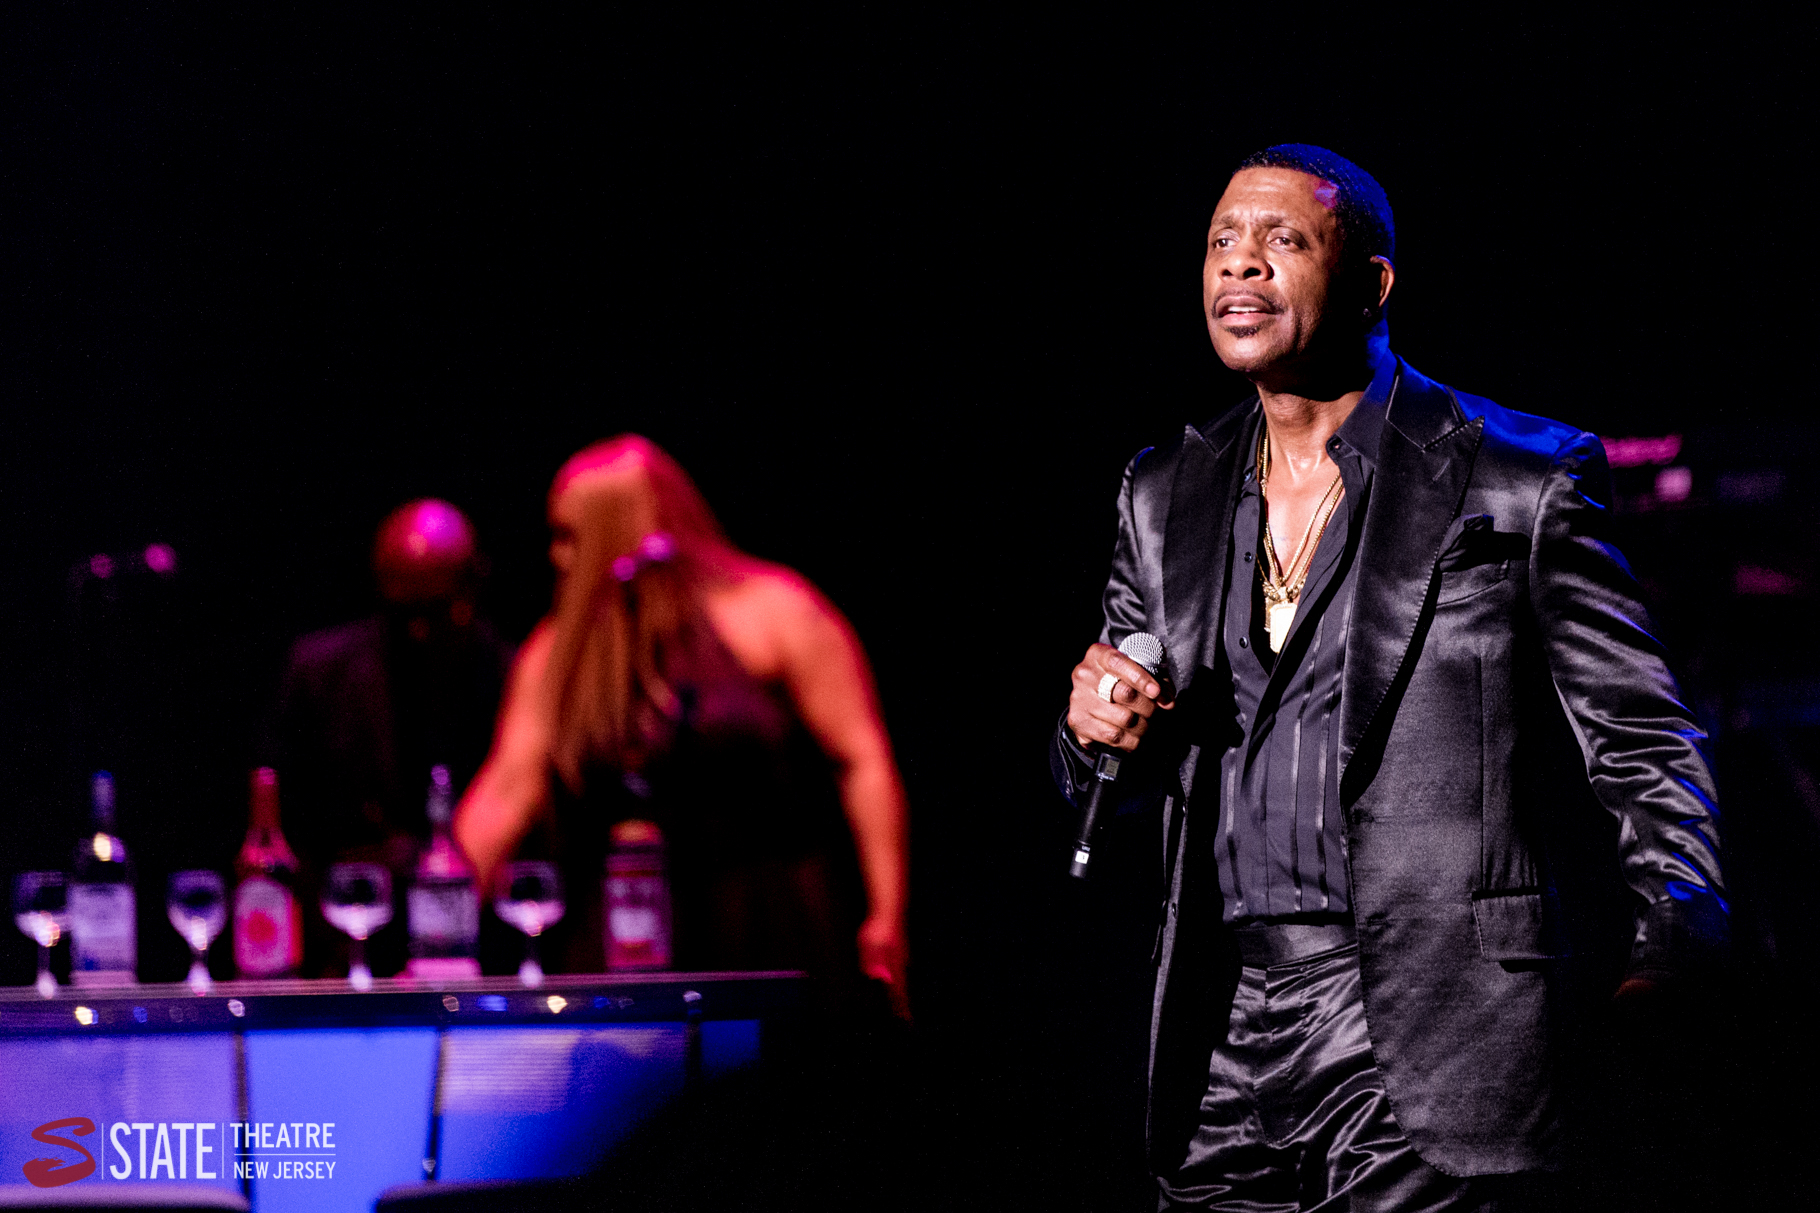 Keith Sweat at the State Theatre NJ